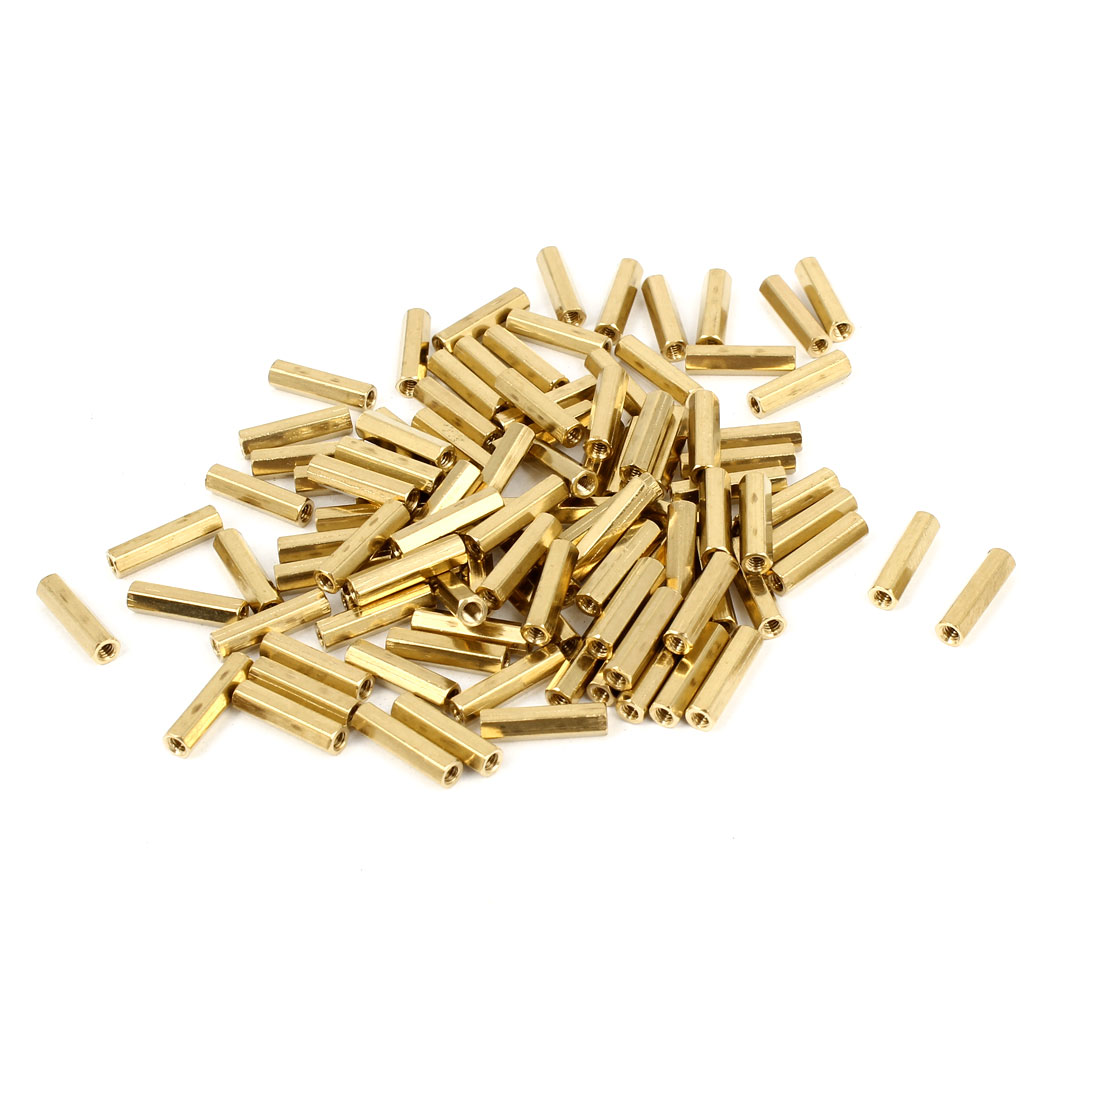 100 Pcs M2 Female Thread Brass Pillar Standoff Hexagonal Spacer 12mm Length